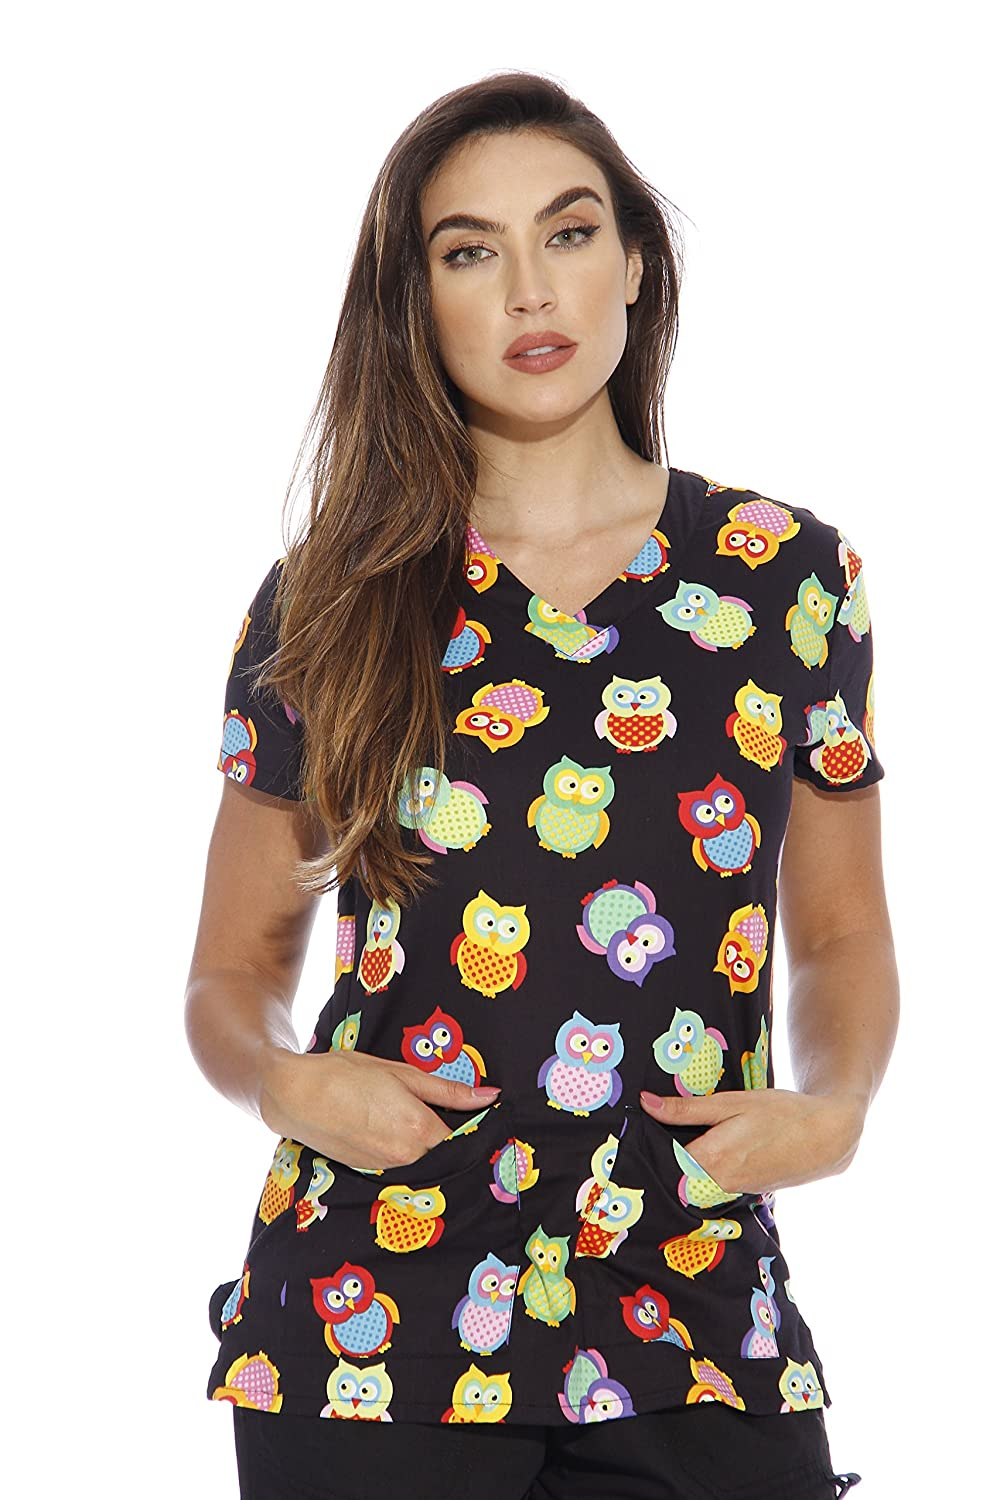 8ea182d6fd2 SPARK A SMILE: Make that doctor's office a little sunnier with these  festive scrub tops for women. Whether it's Christmas, Halloween, 4th of  July, ...